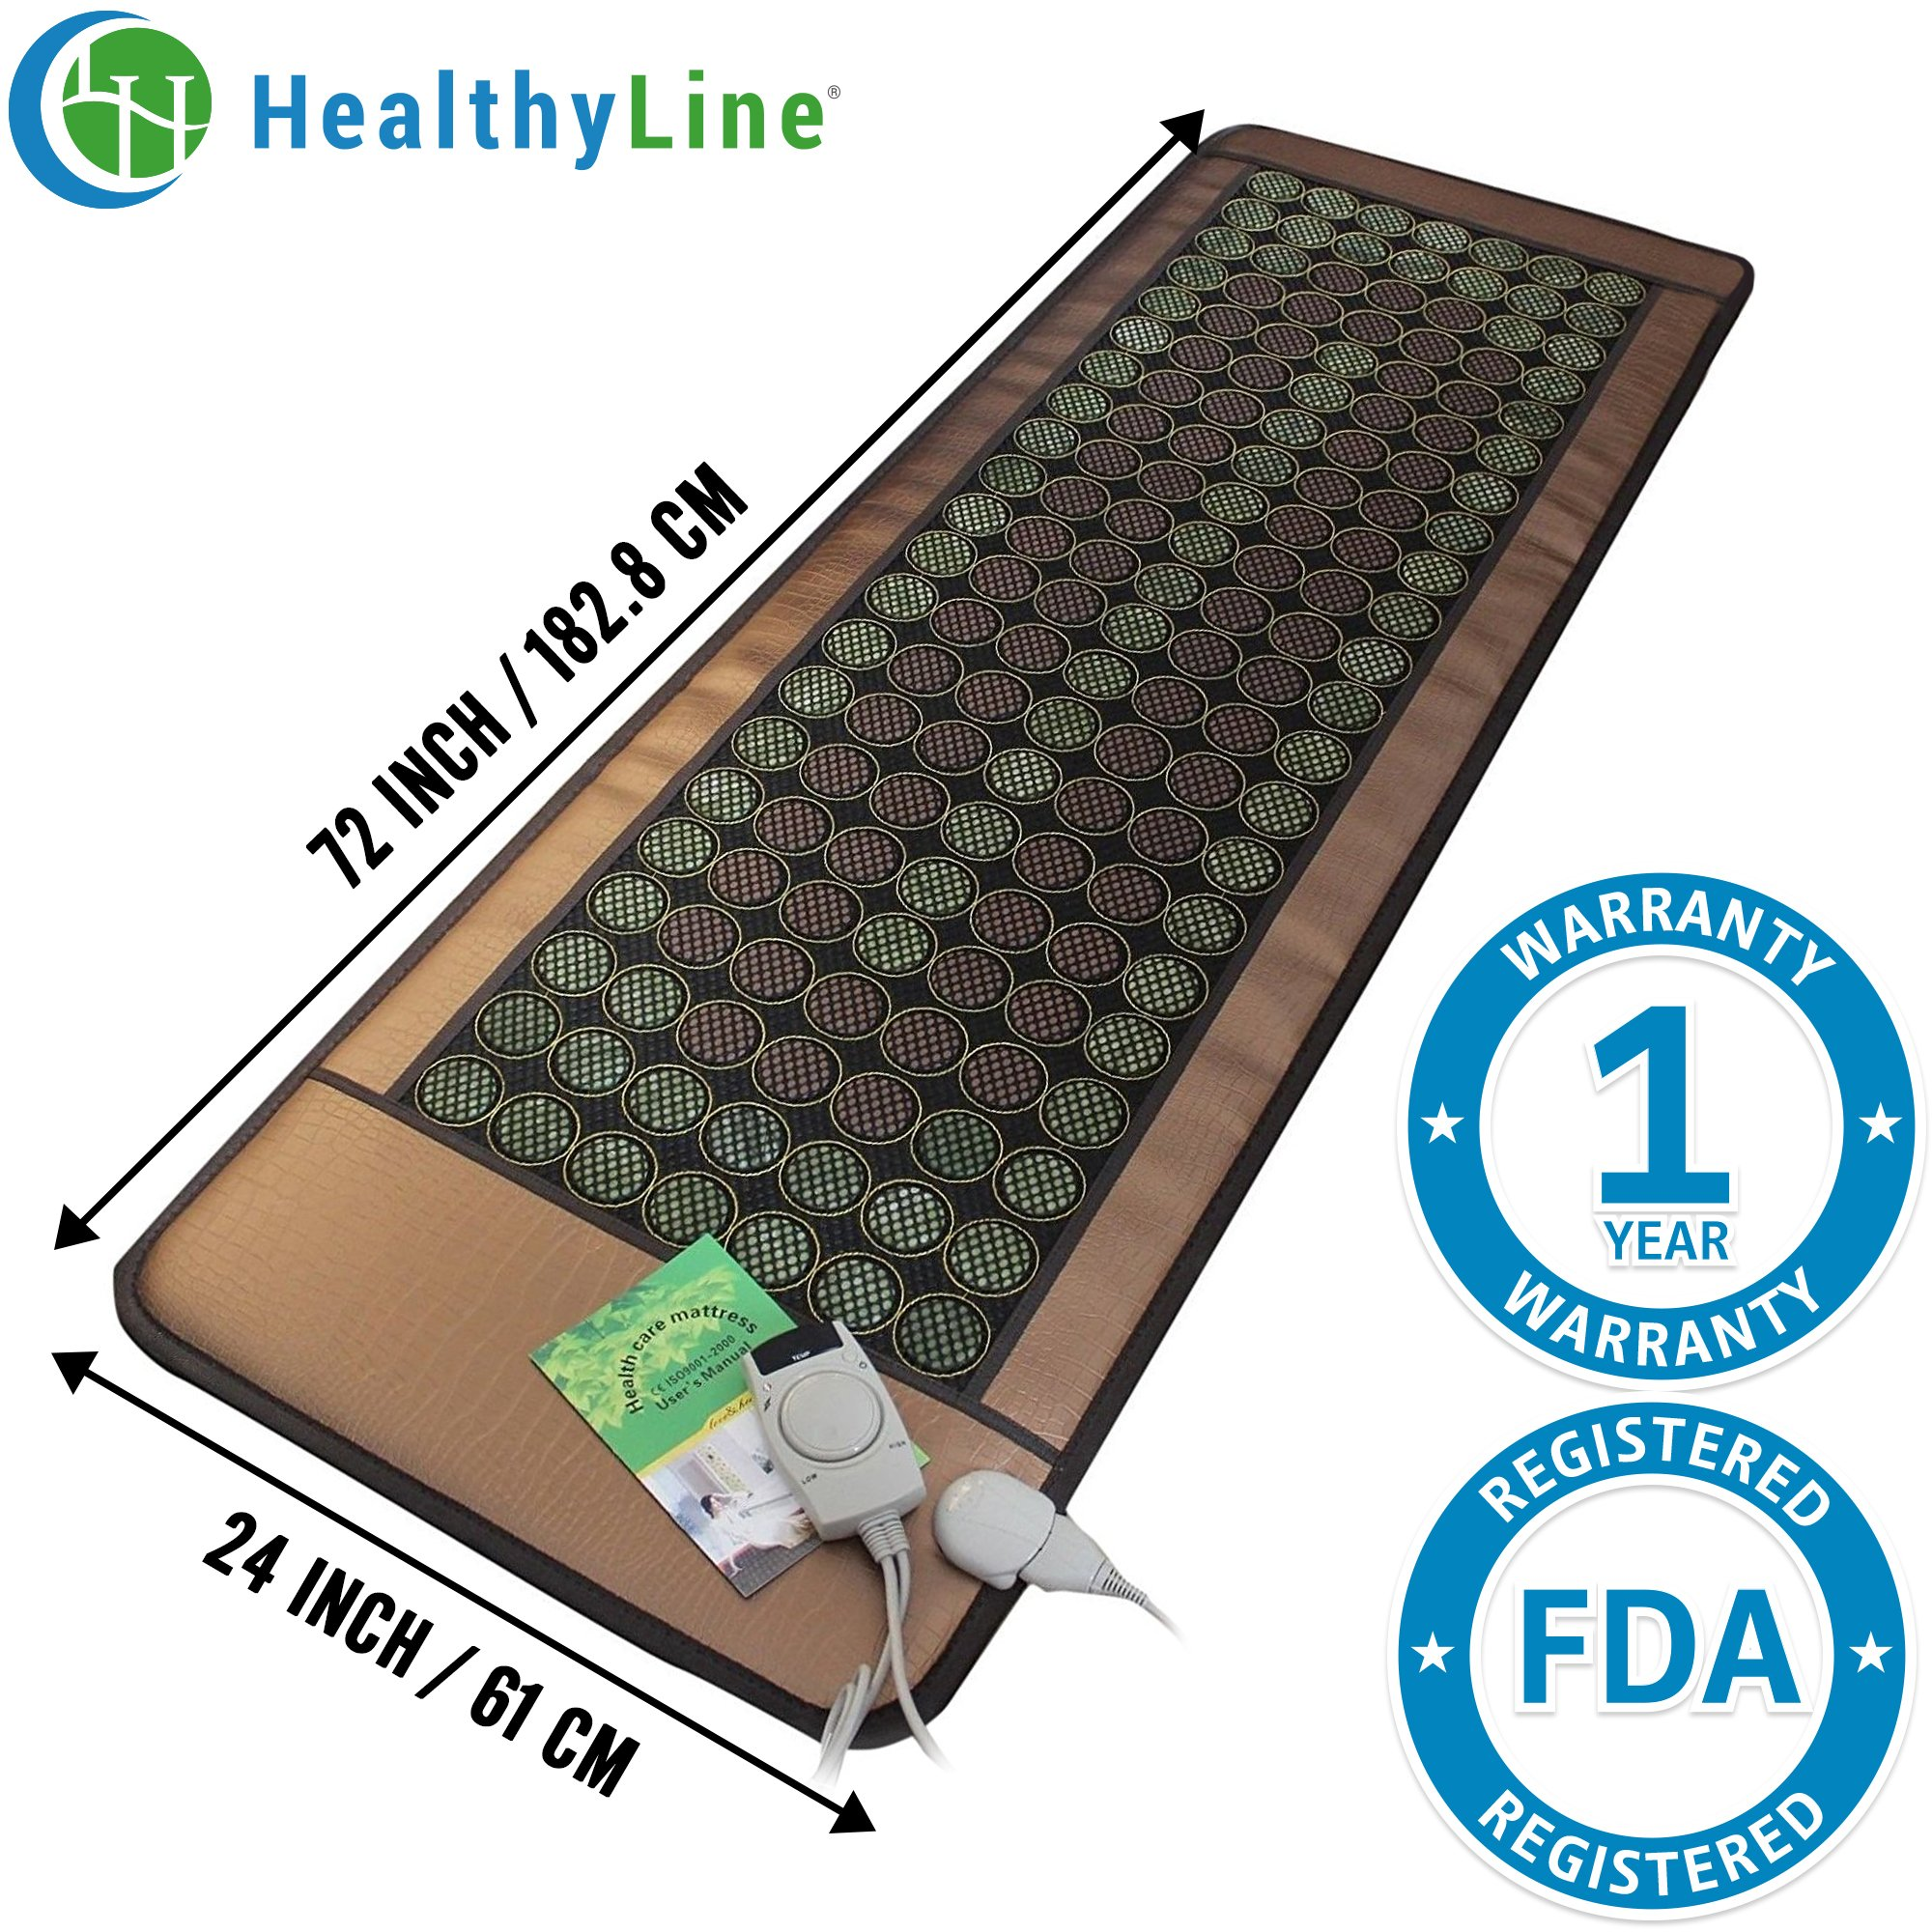 HealthyLine Far Infrared Heating Mat 72''X24'' Relieve Muscles Pain & Insomnia| Natural Jade & Tourmaline Stone | Negative Ions (Large & Flex) | US FDA by HealthyLine (Image #1)